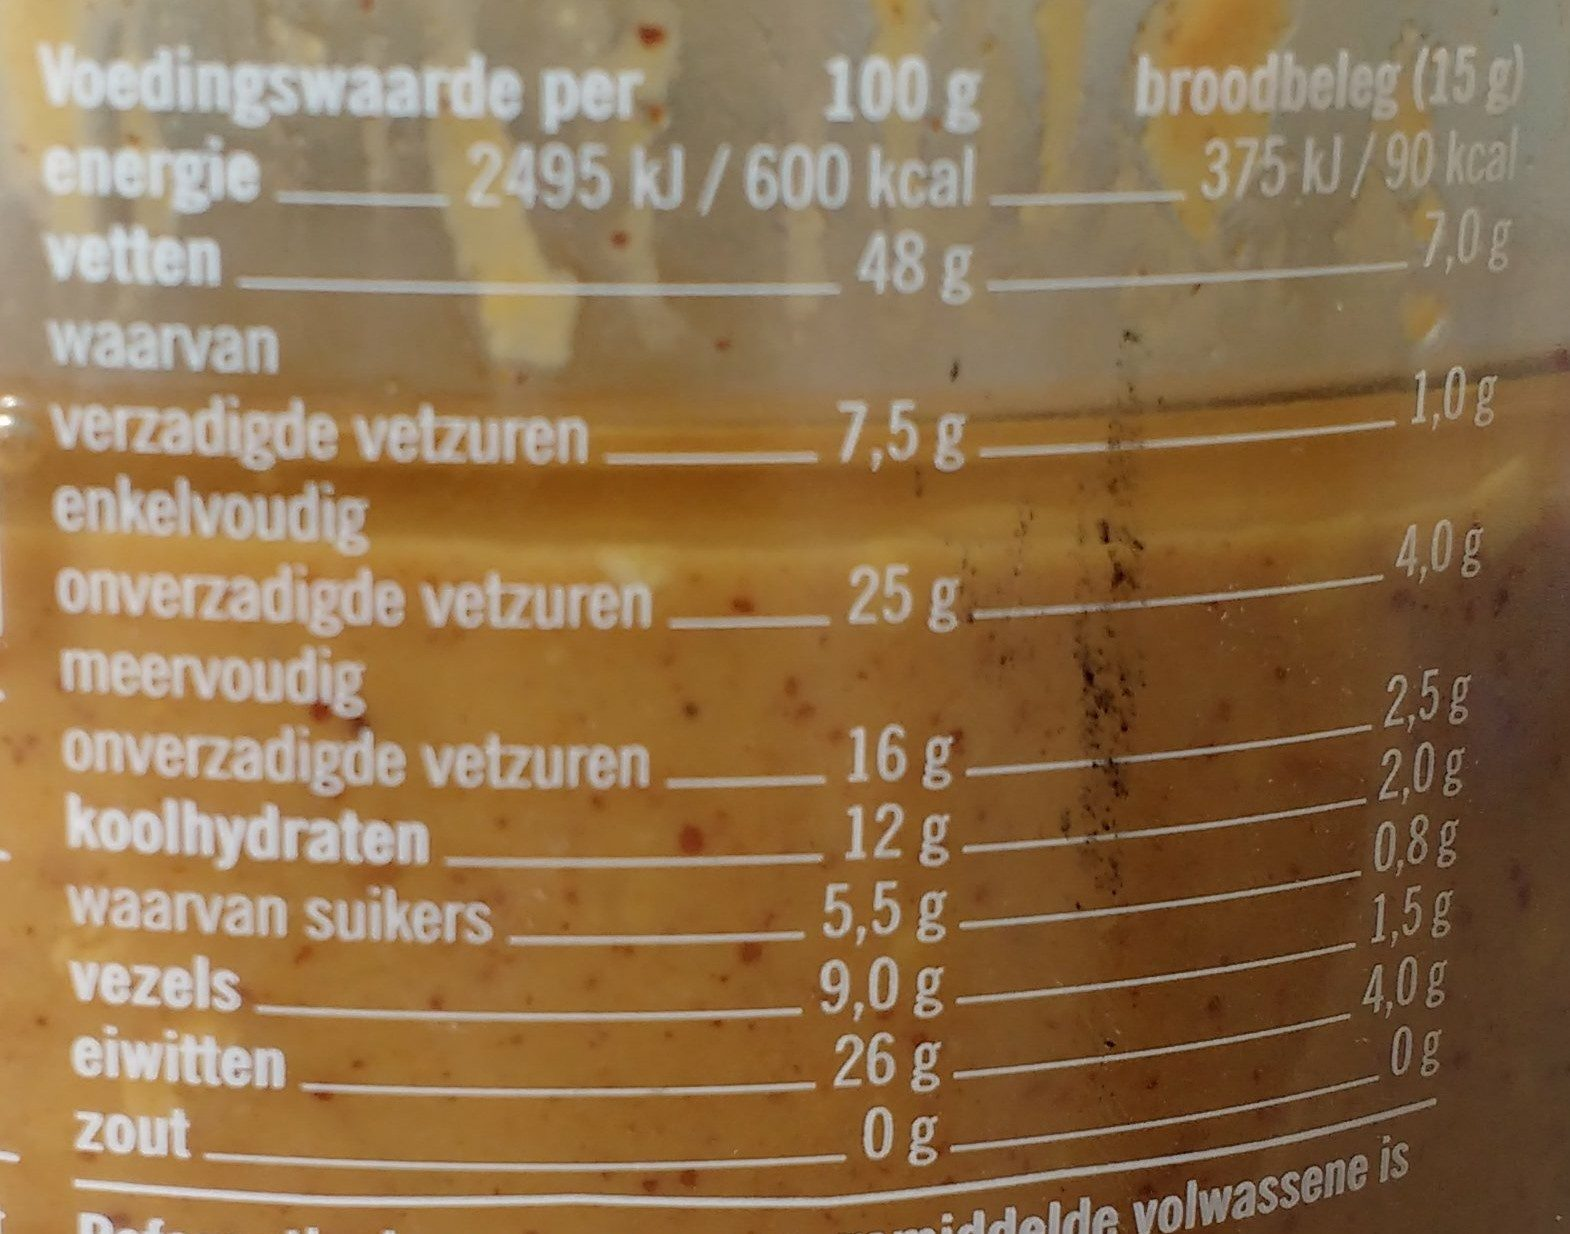 Pindakaas 100% - Nutrition facts - en